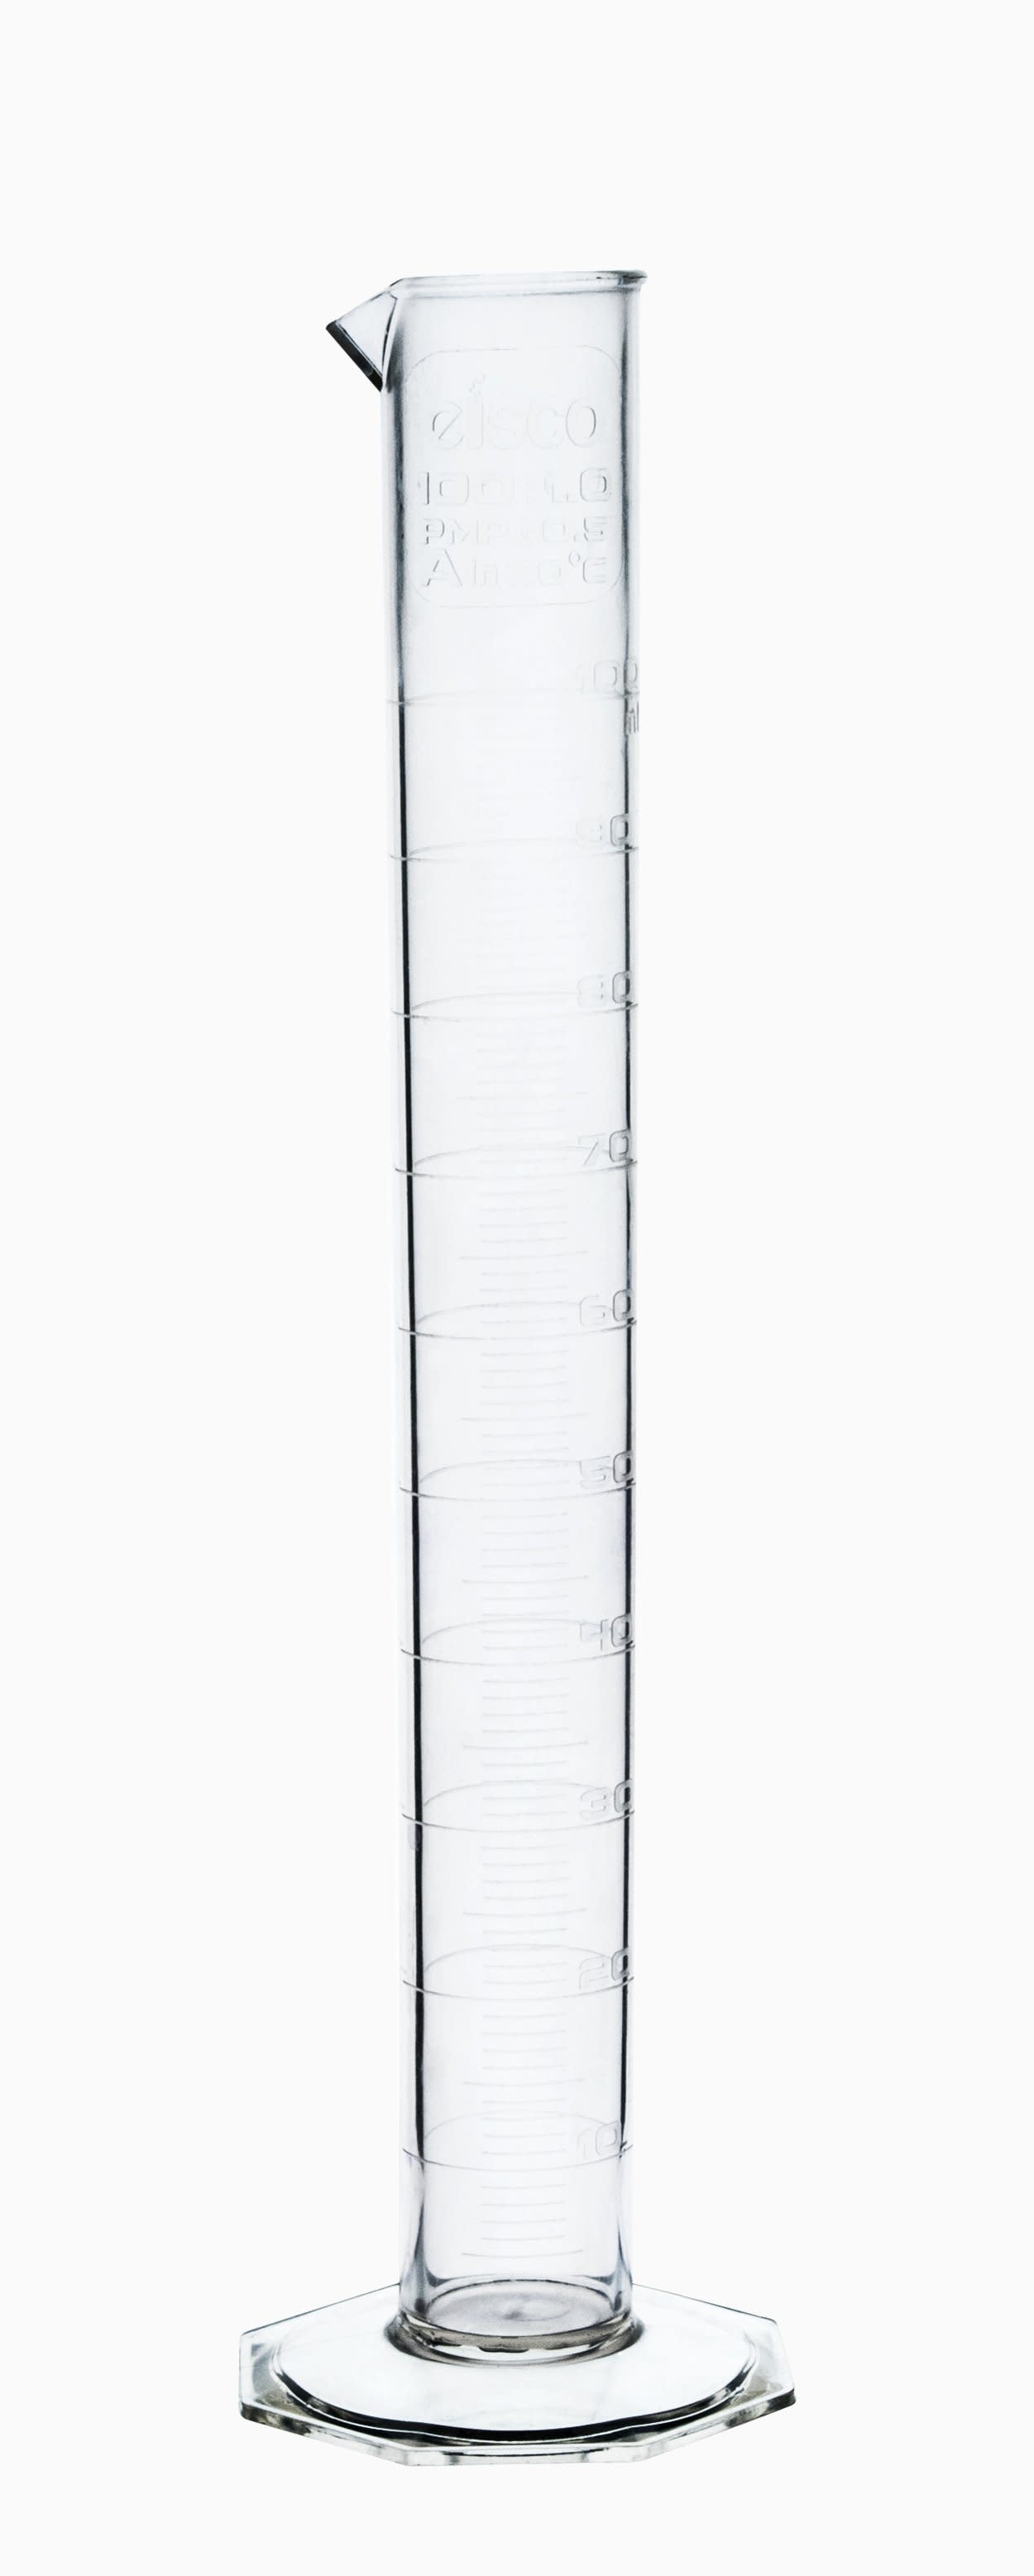 TPX Graduated Cylinder, 100ml, 1ml Graduation, Hexagonal Base, Class B, Autoclavable